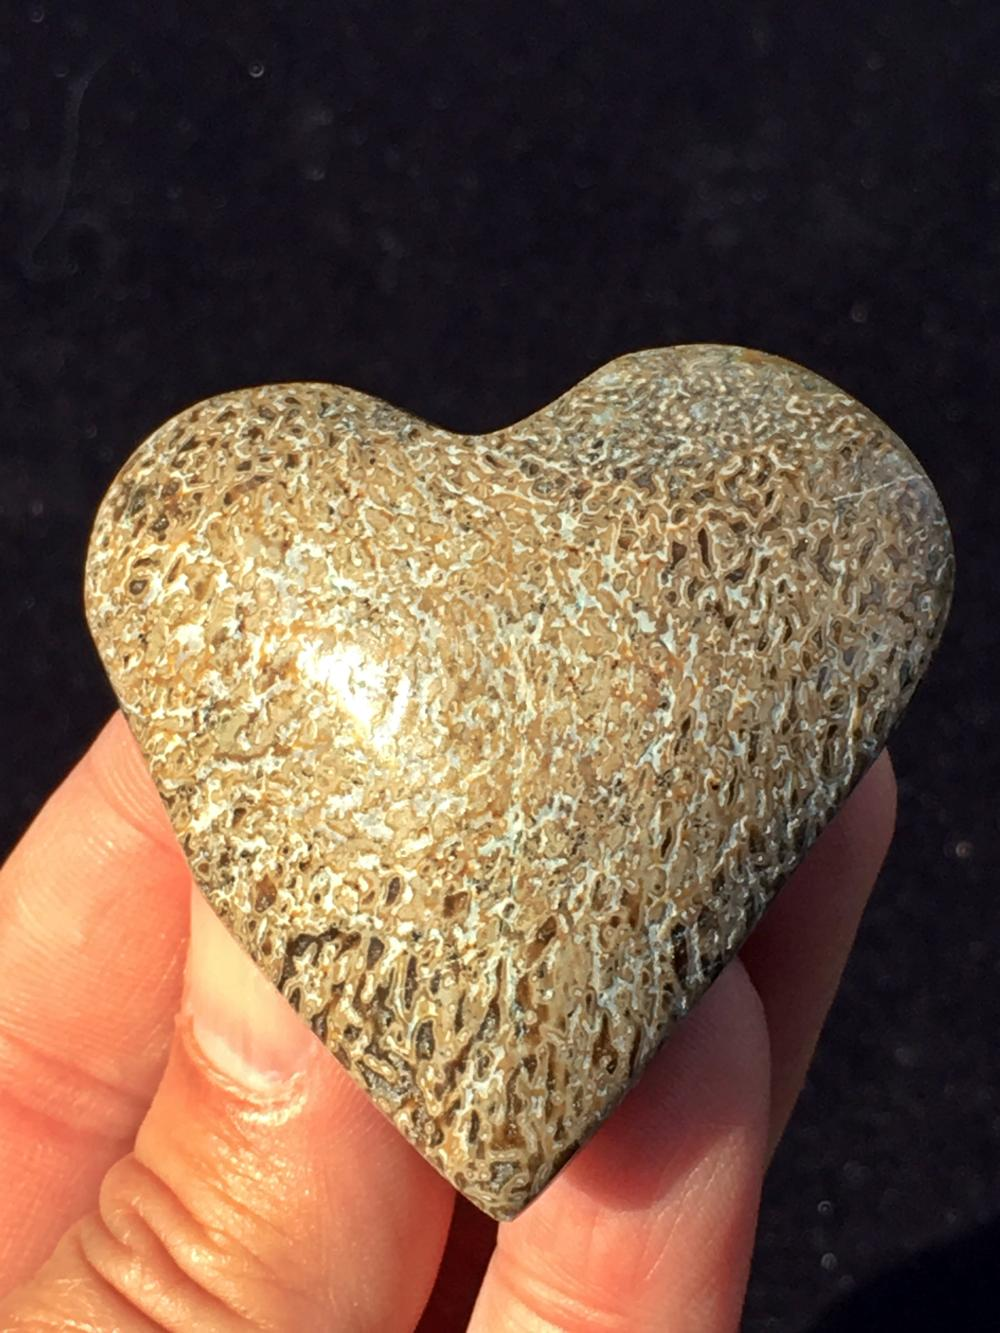 Lot 76: Dinosaur, Rock, Fossil, Natural, Collectible, Carving, Heart